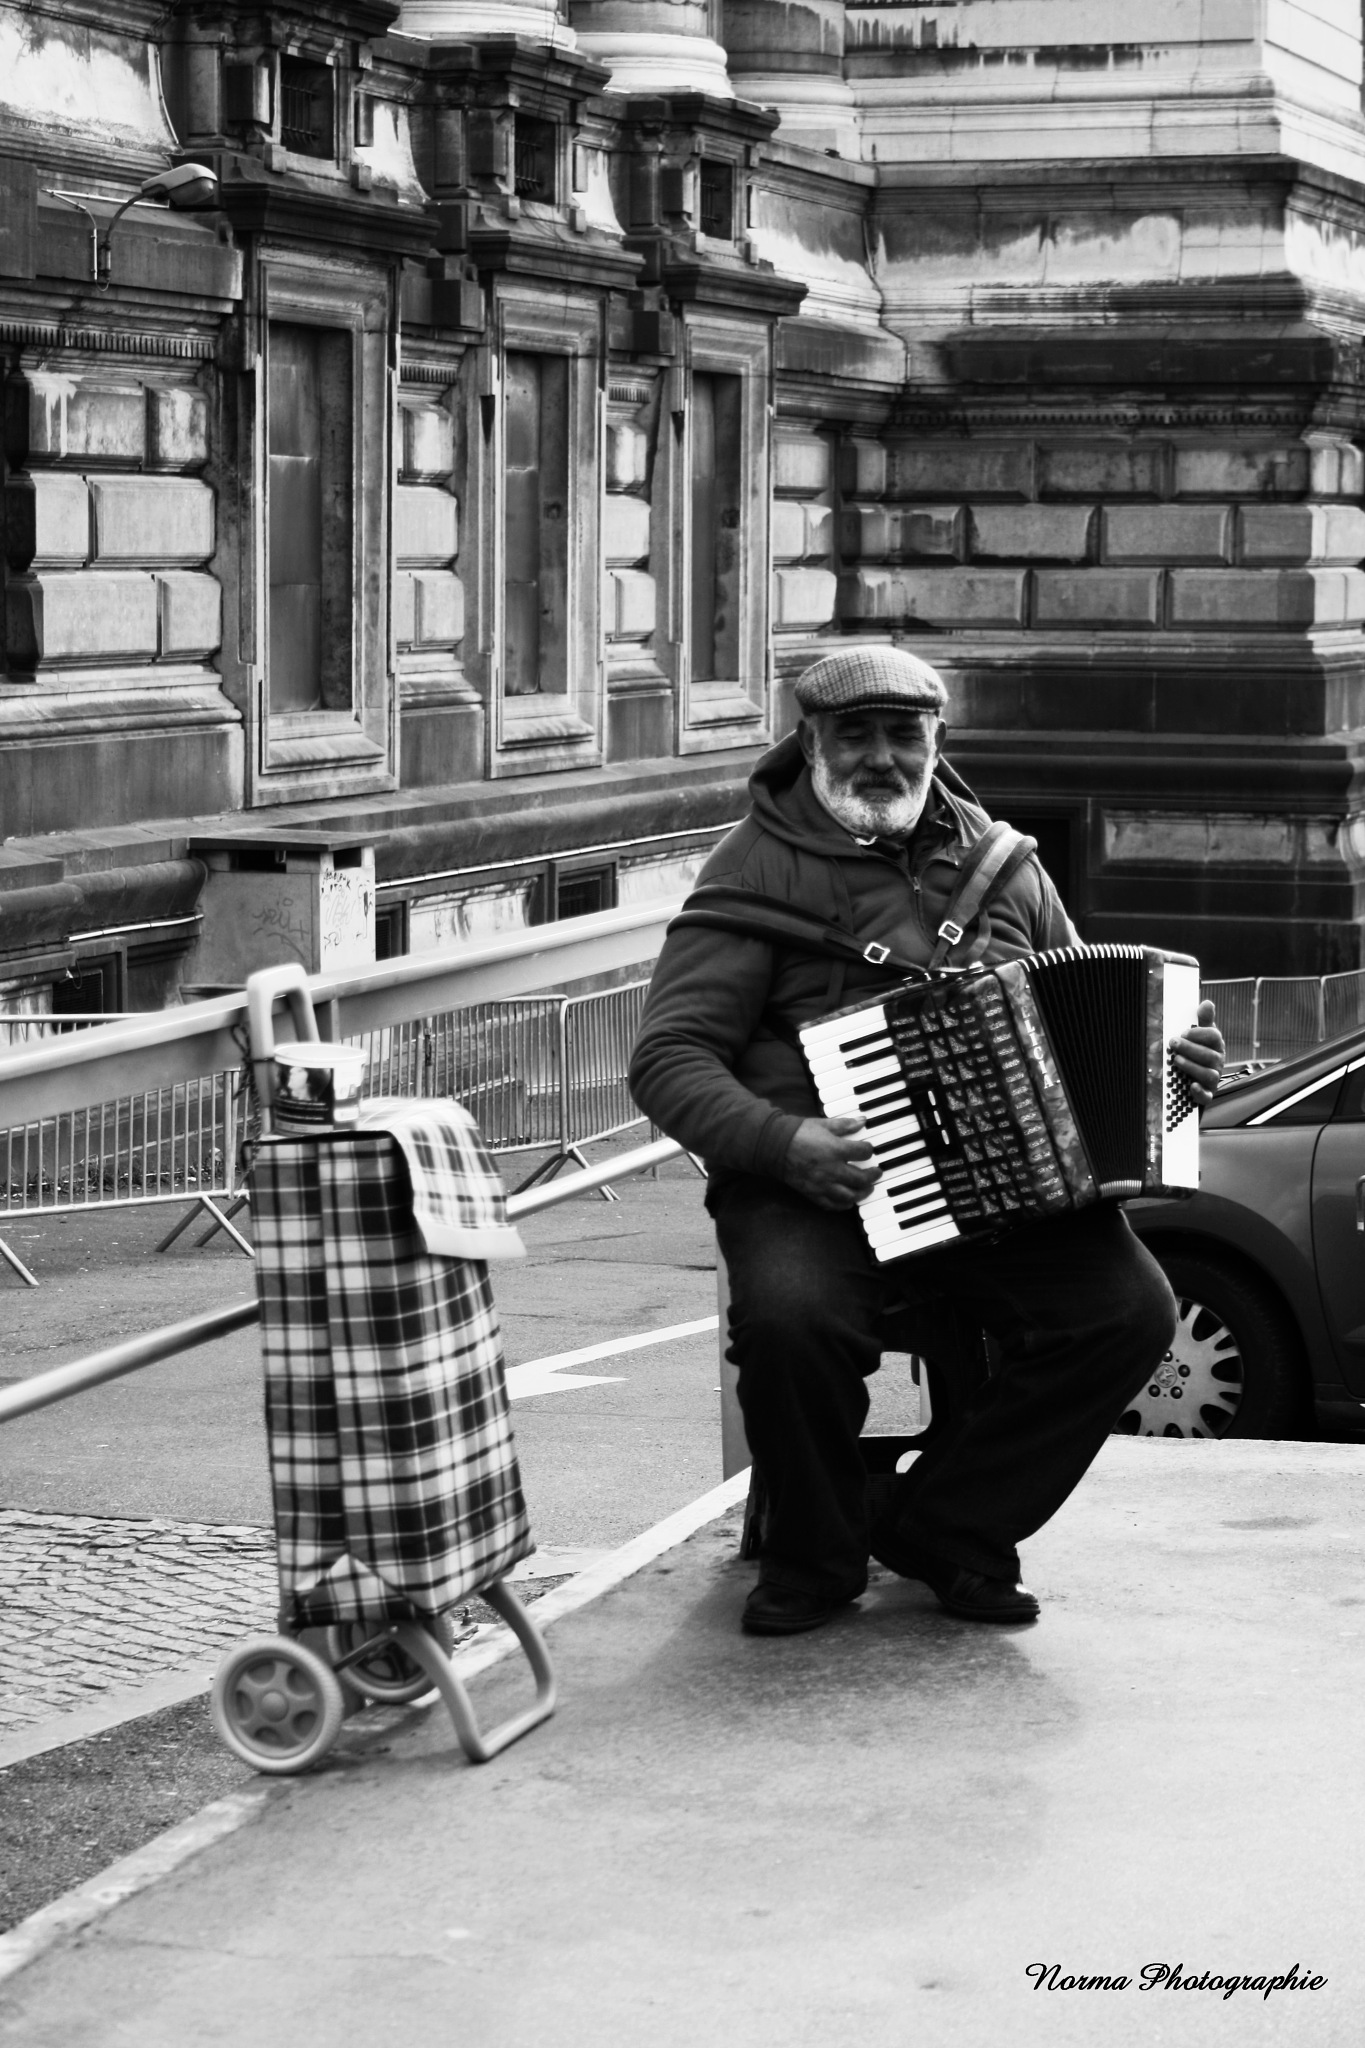 L'accordéoniste by Norma Photographie